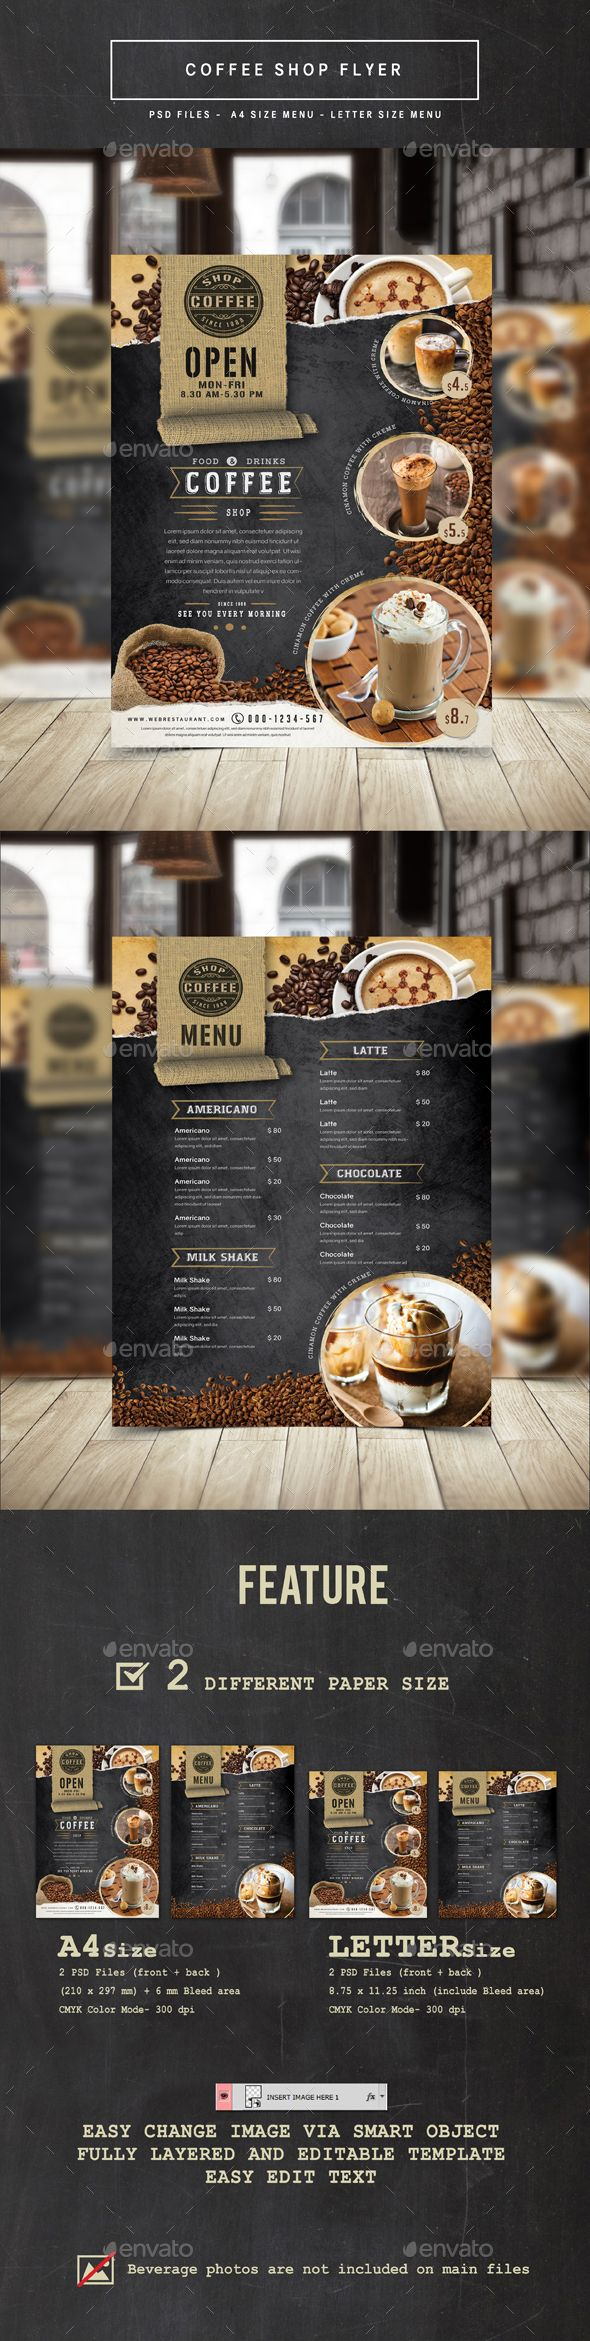 Coffee Shop PSD Flyer Template • Only available here http